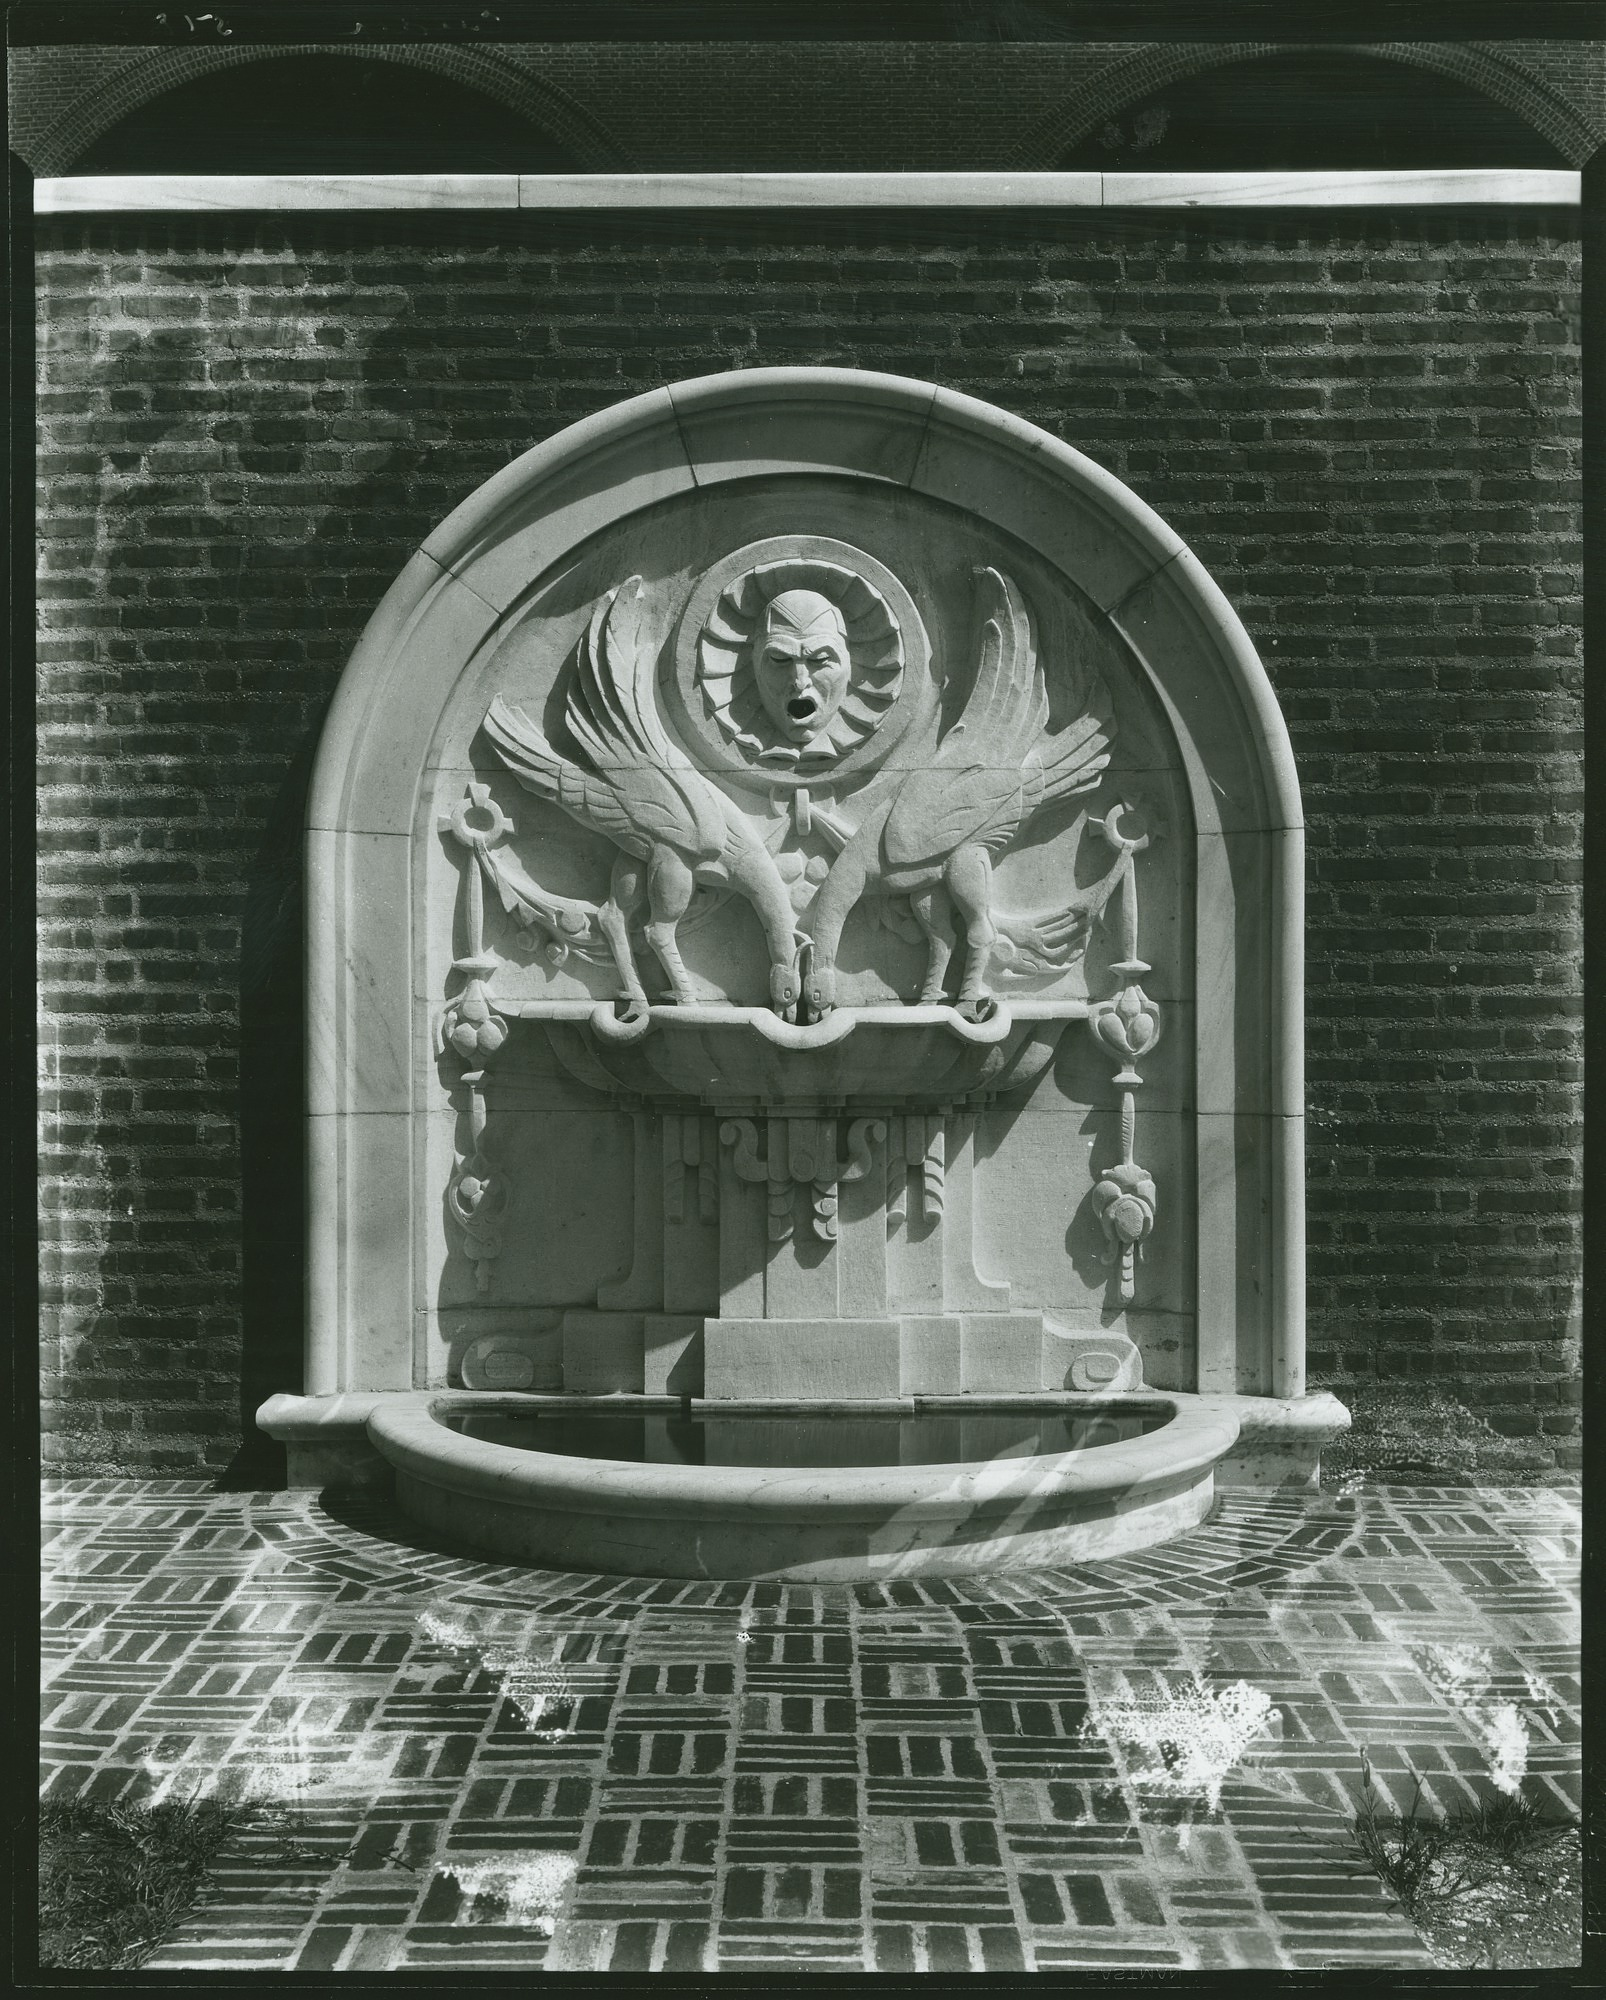 Fountain sculpture / (photographed by Peter A. Juley & Son)